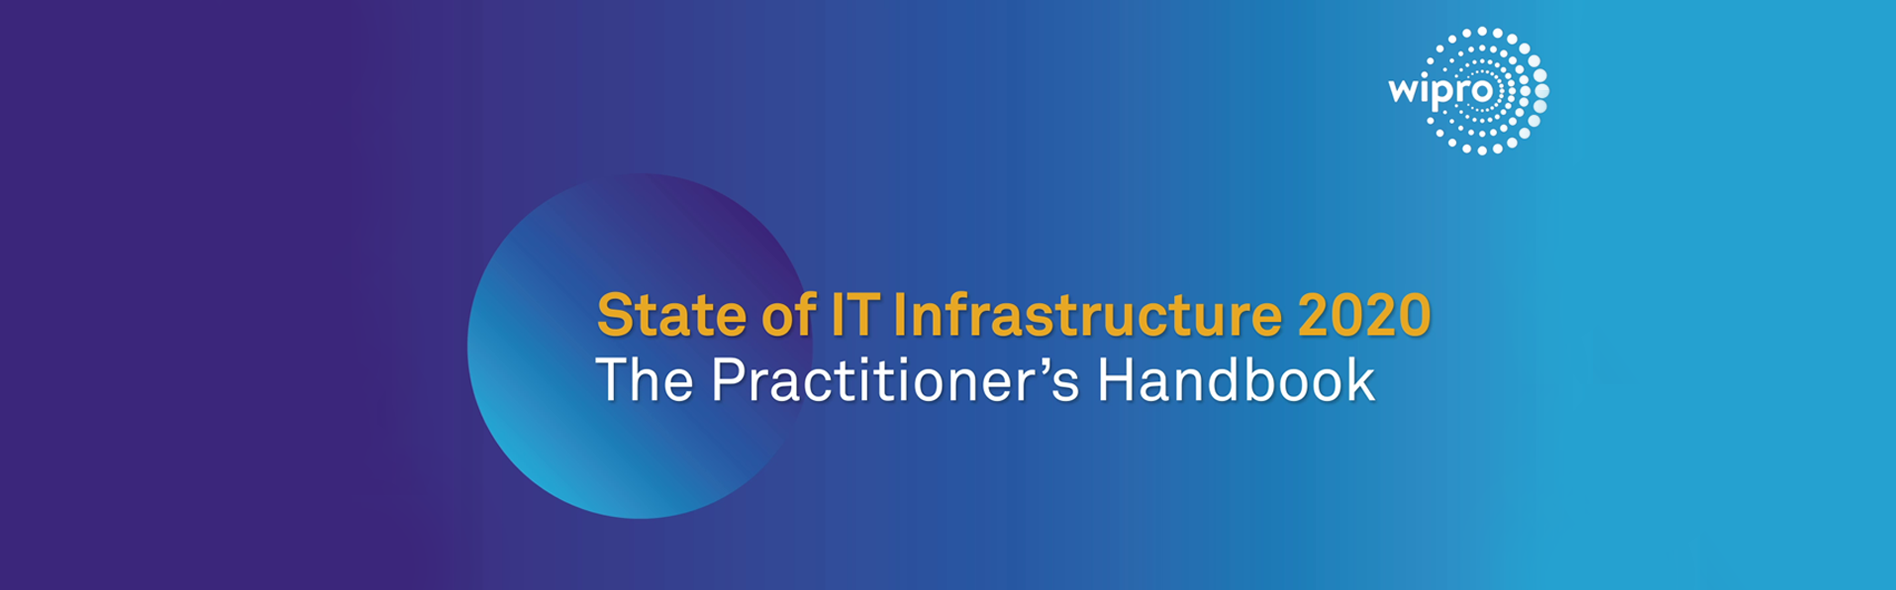 Wipros State of IT Infrastructure Report 2020 The Practitioners Handbook